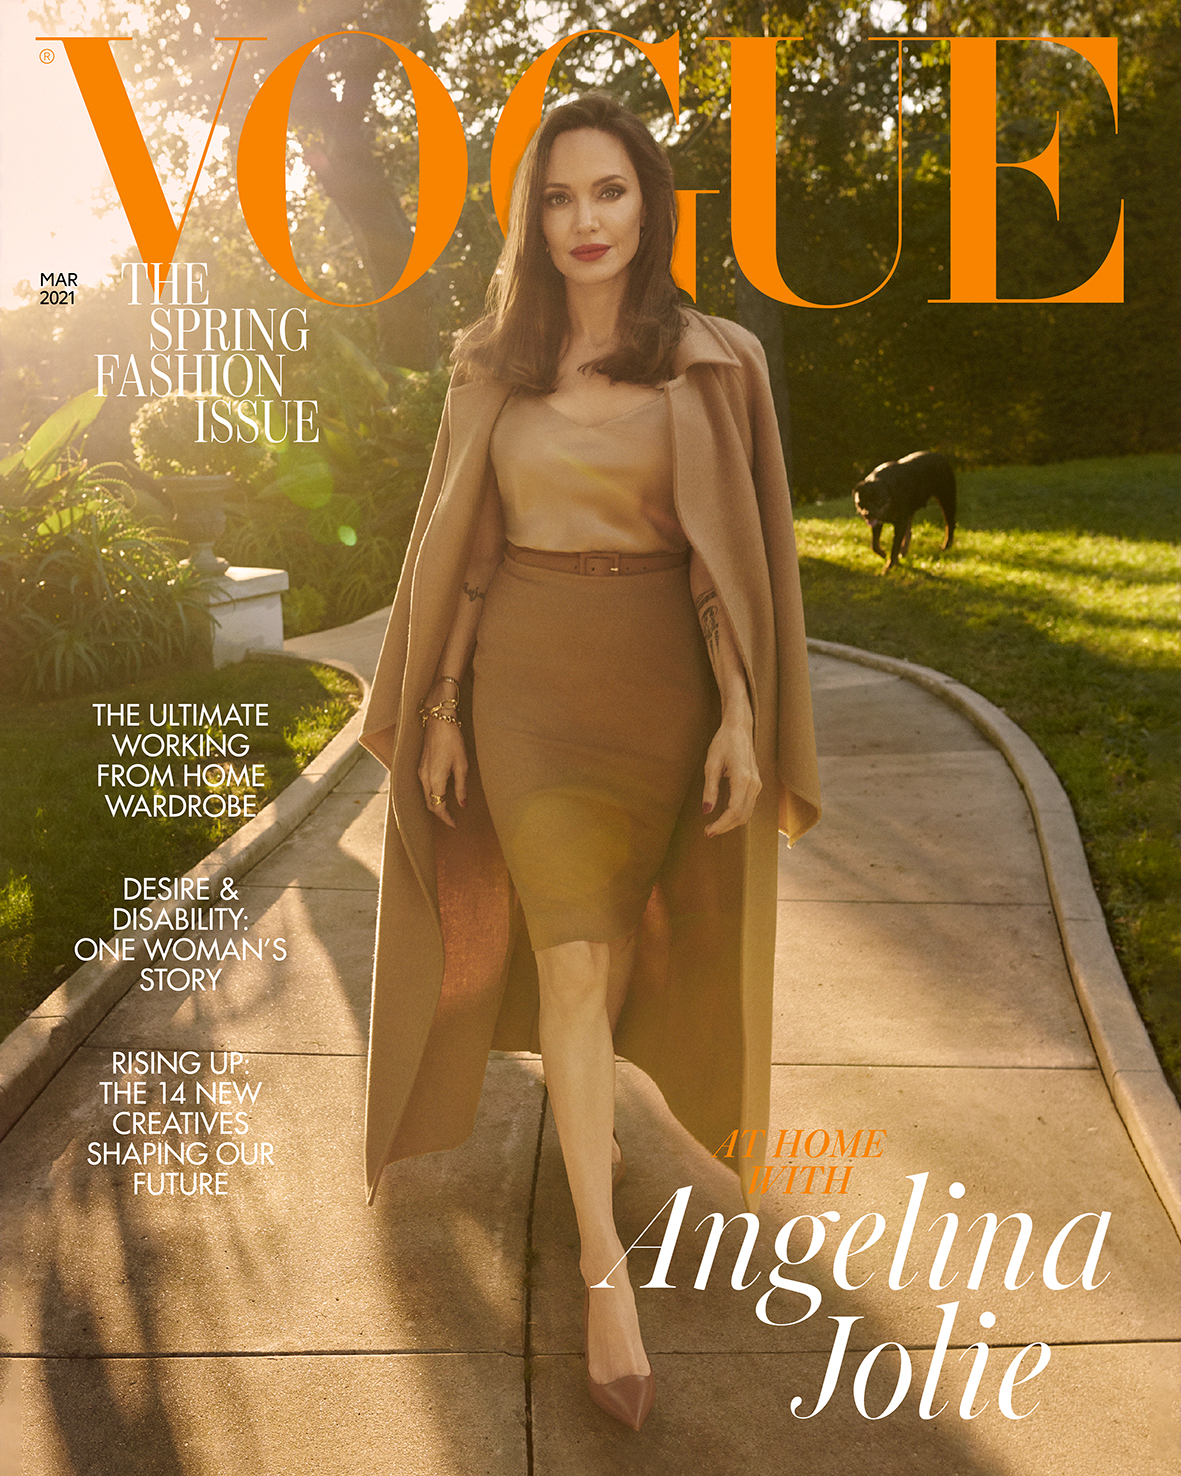 Angelina Jolie VOGUE